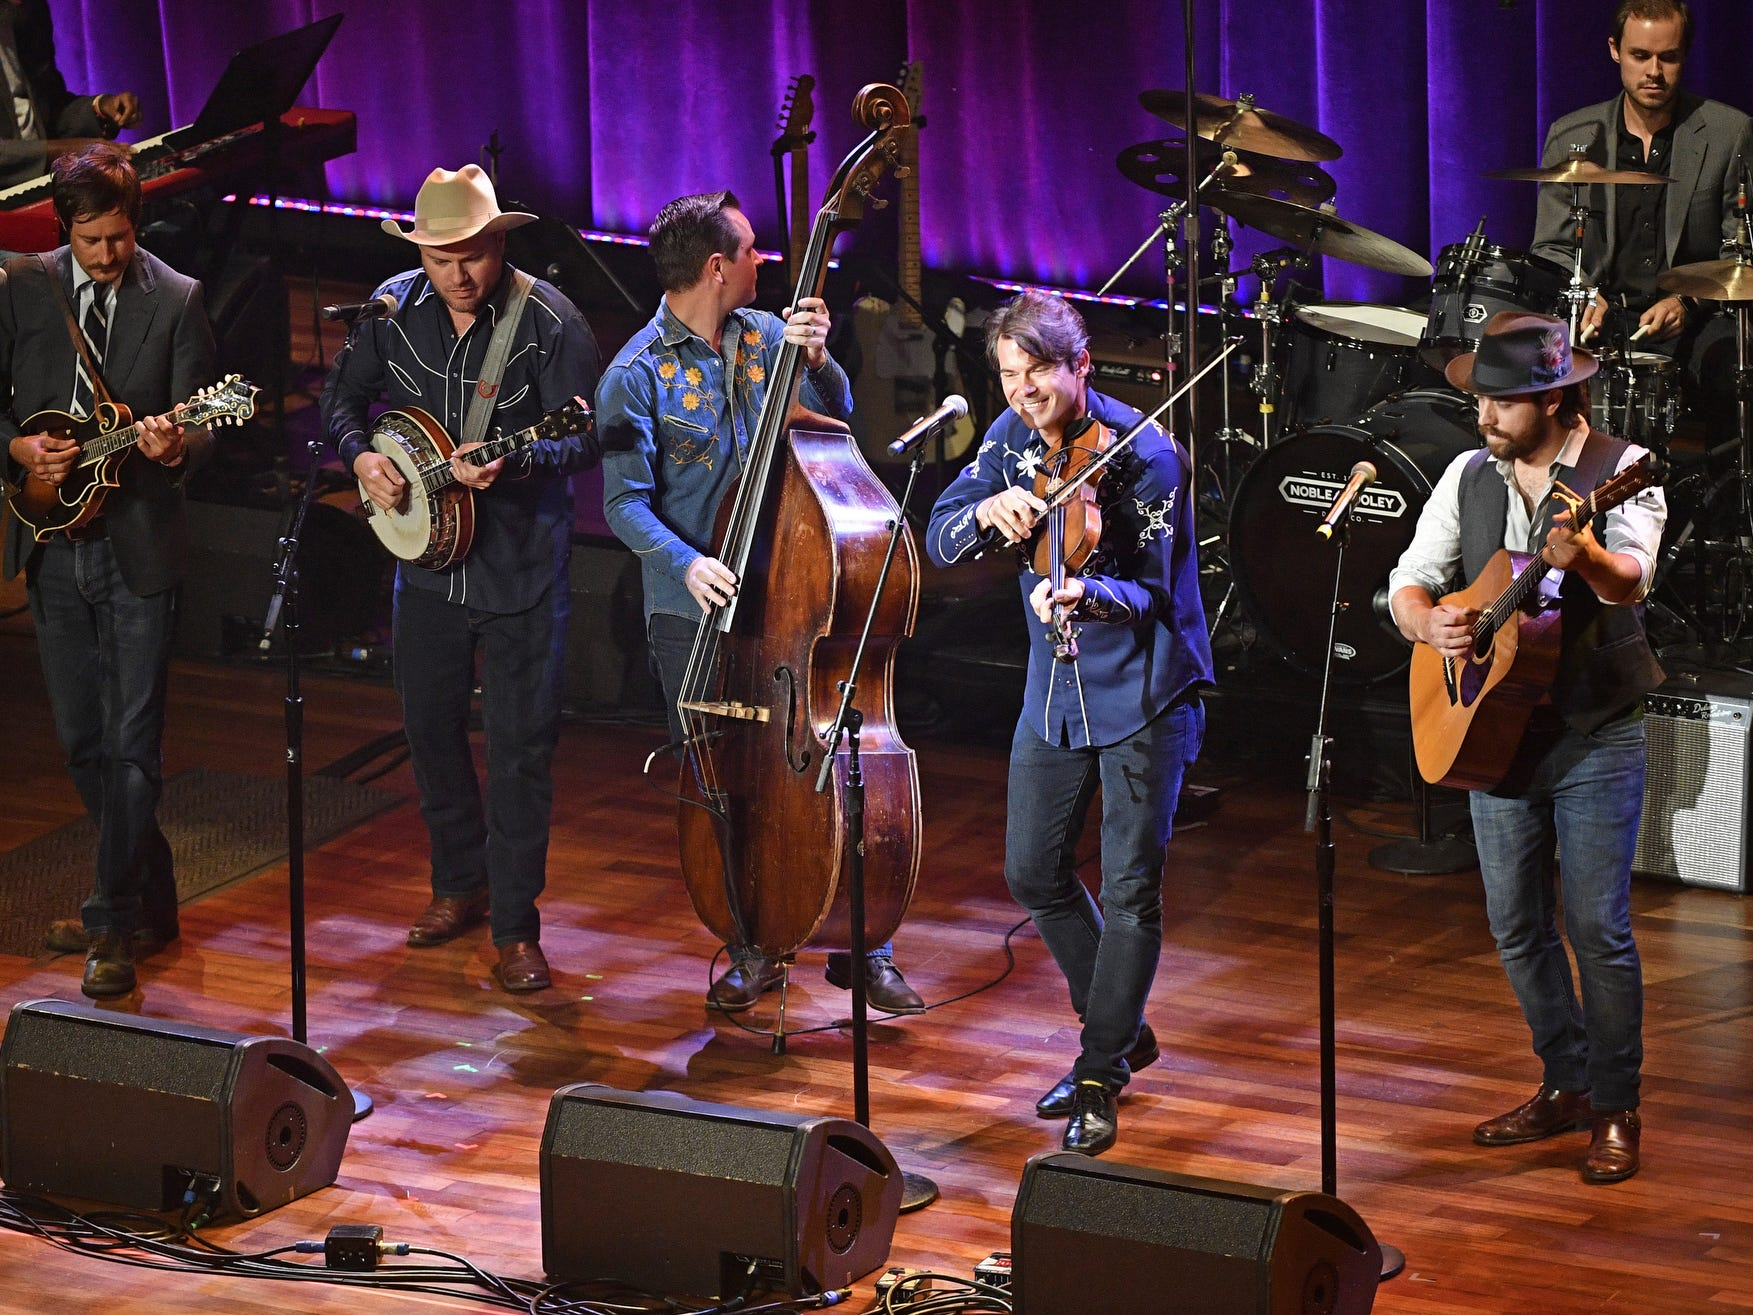 April 20 GRAND OLE OPRY WITH OLD CROW MEDICINE SHOW, MORE: 7 p.m. Grand Ole Opry House, $40-$110, opry.com